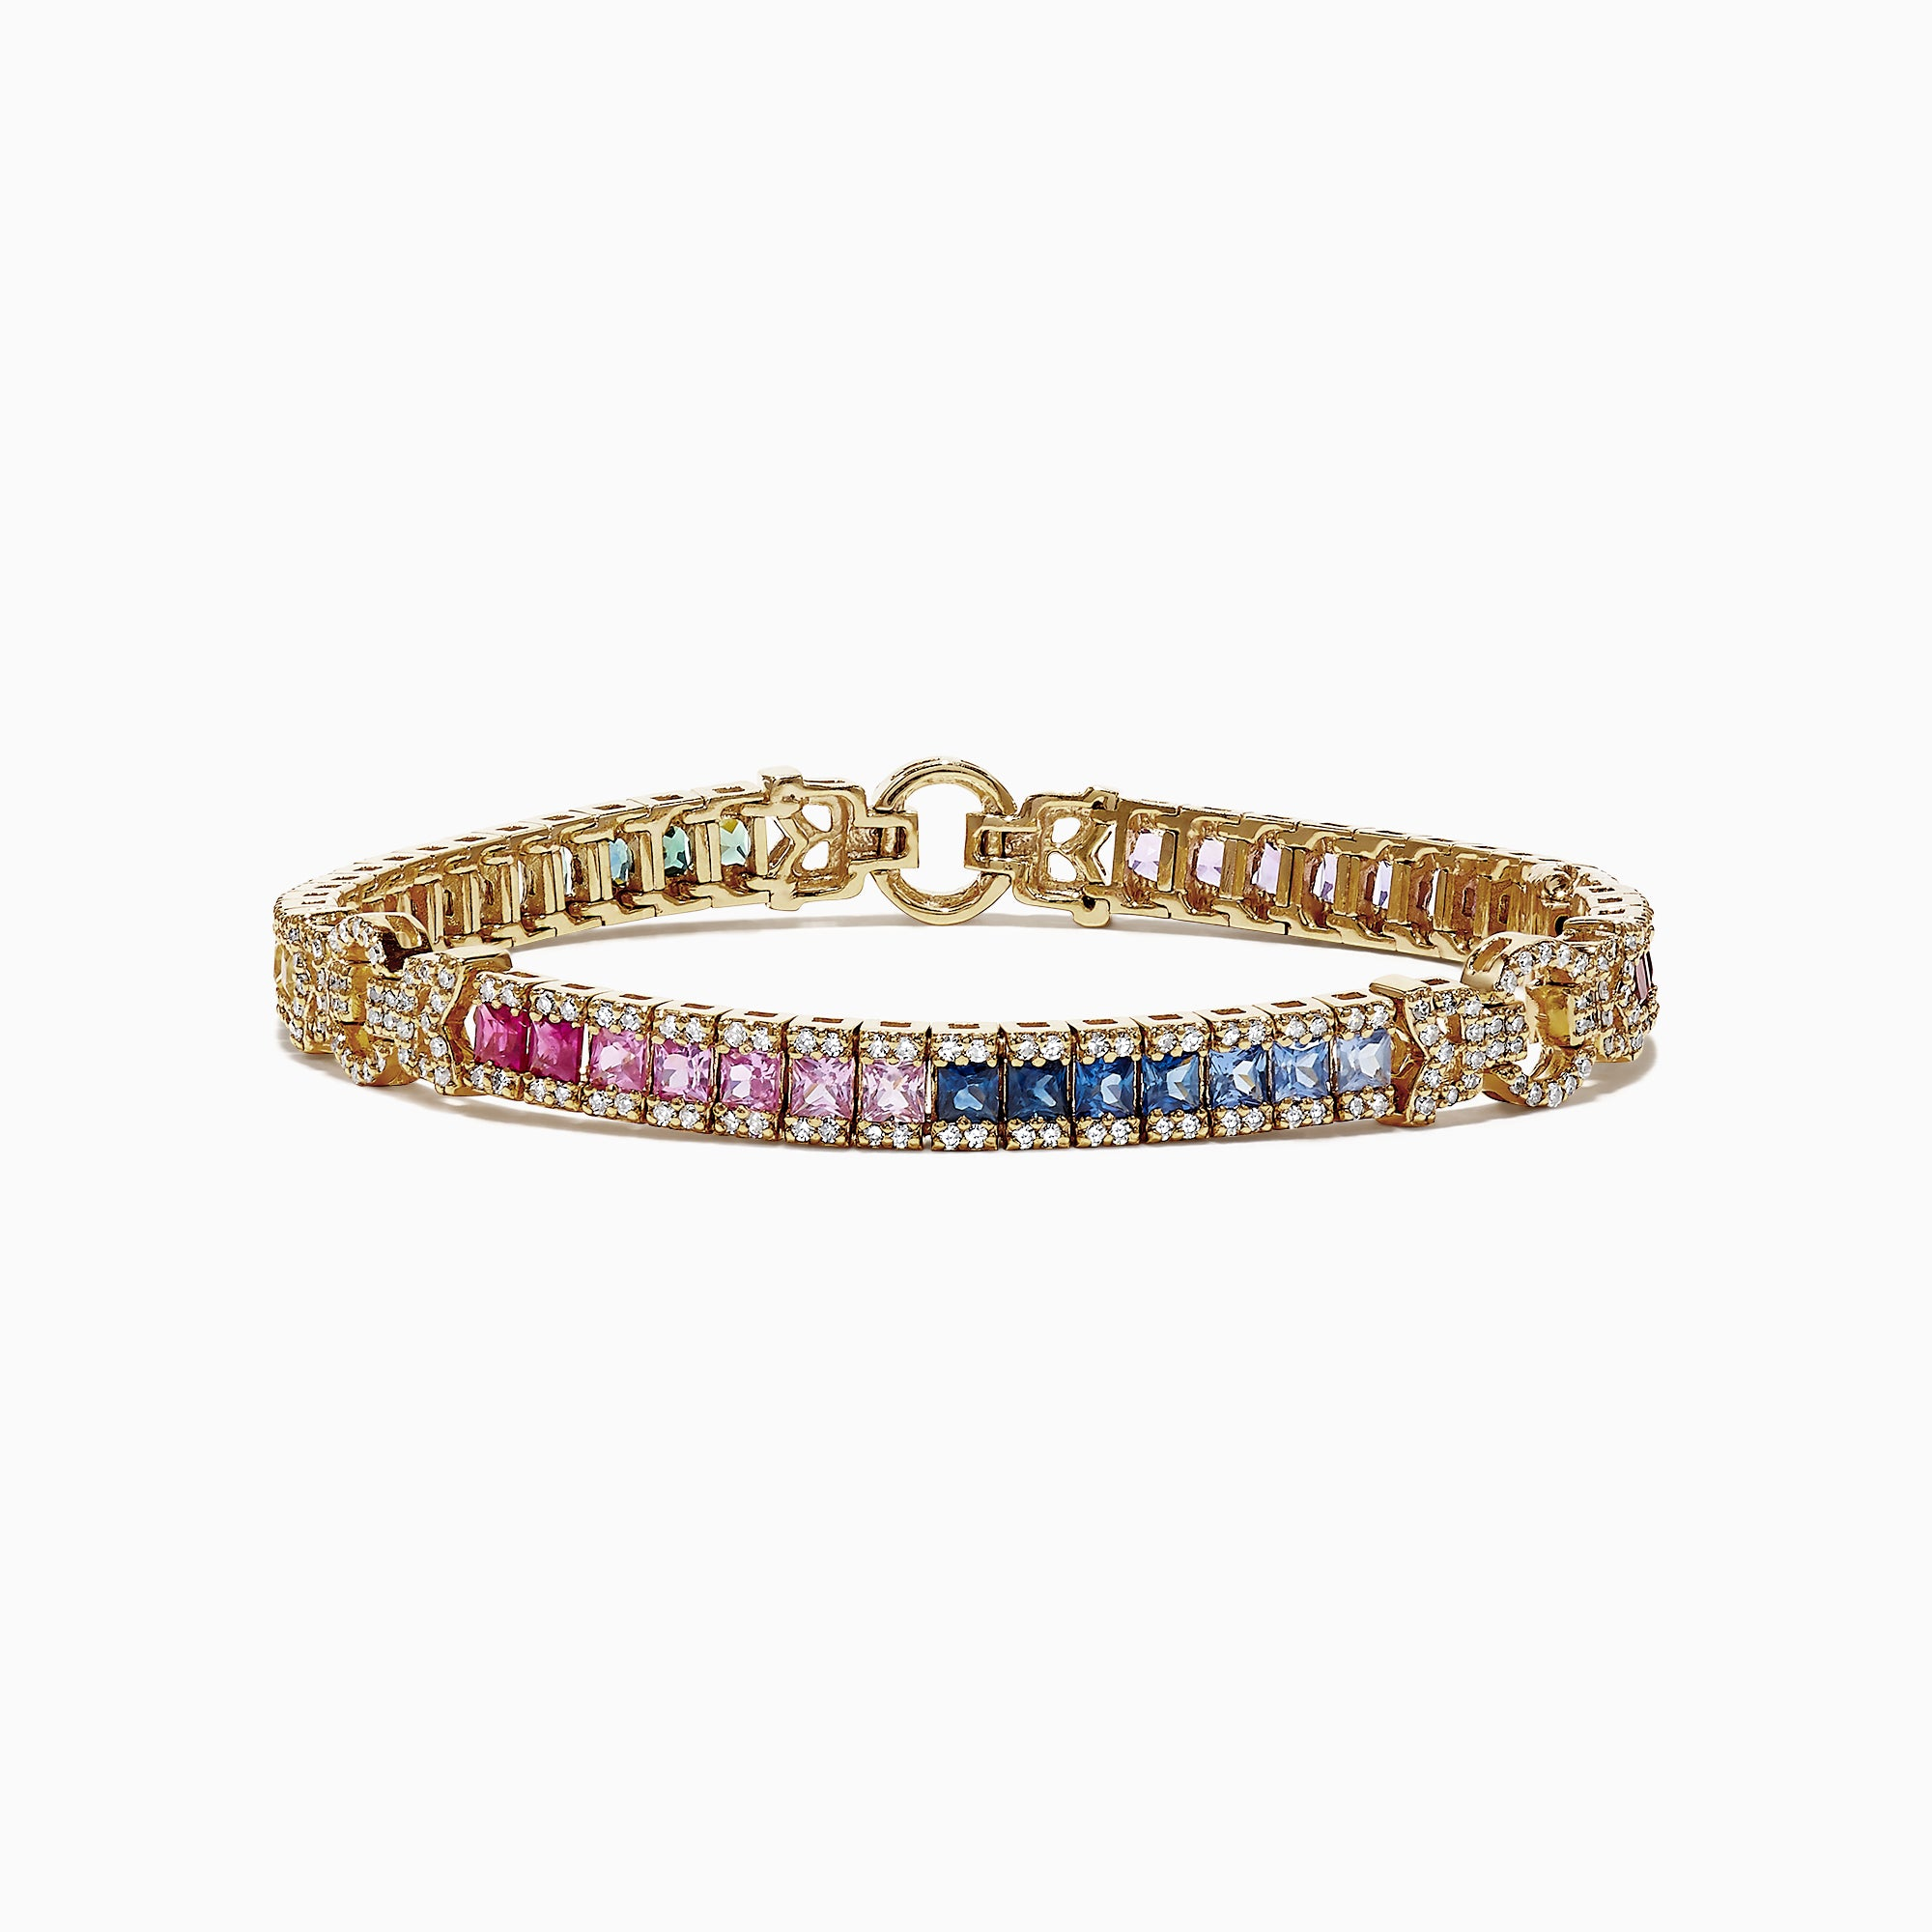 Effy Watercolors 14K Yellow Gold Multi-Sapphire and Dia Bracelet, 7.66 TCW